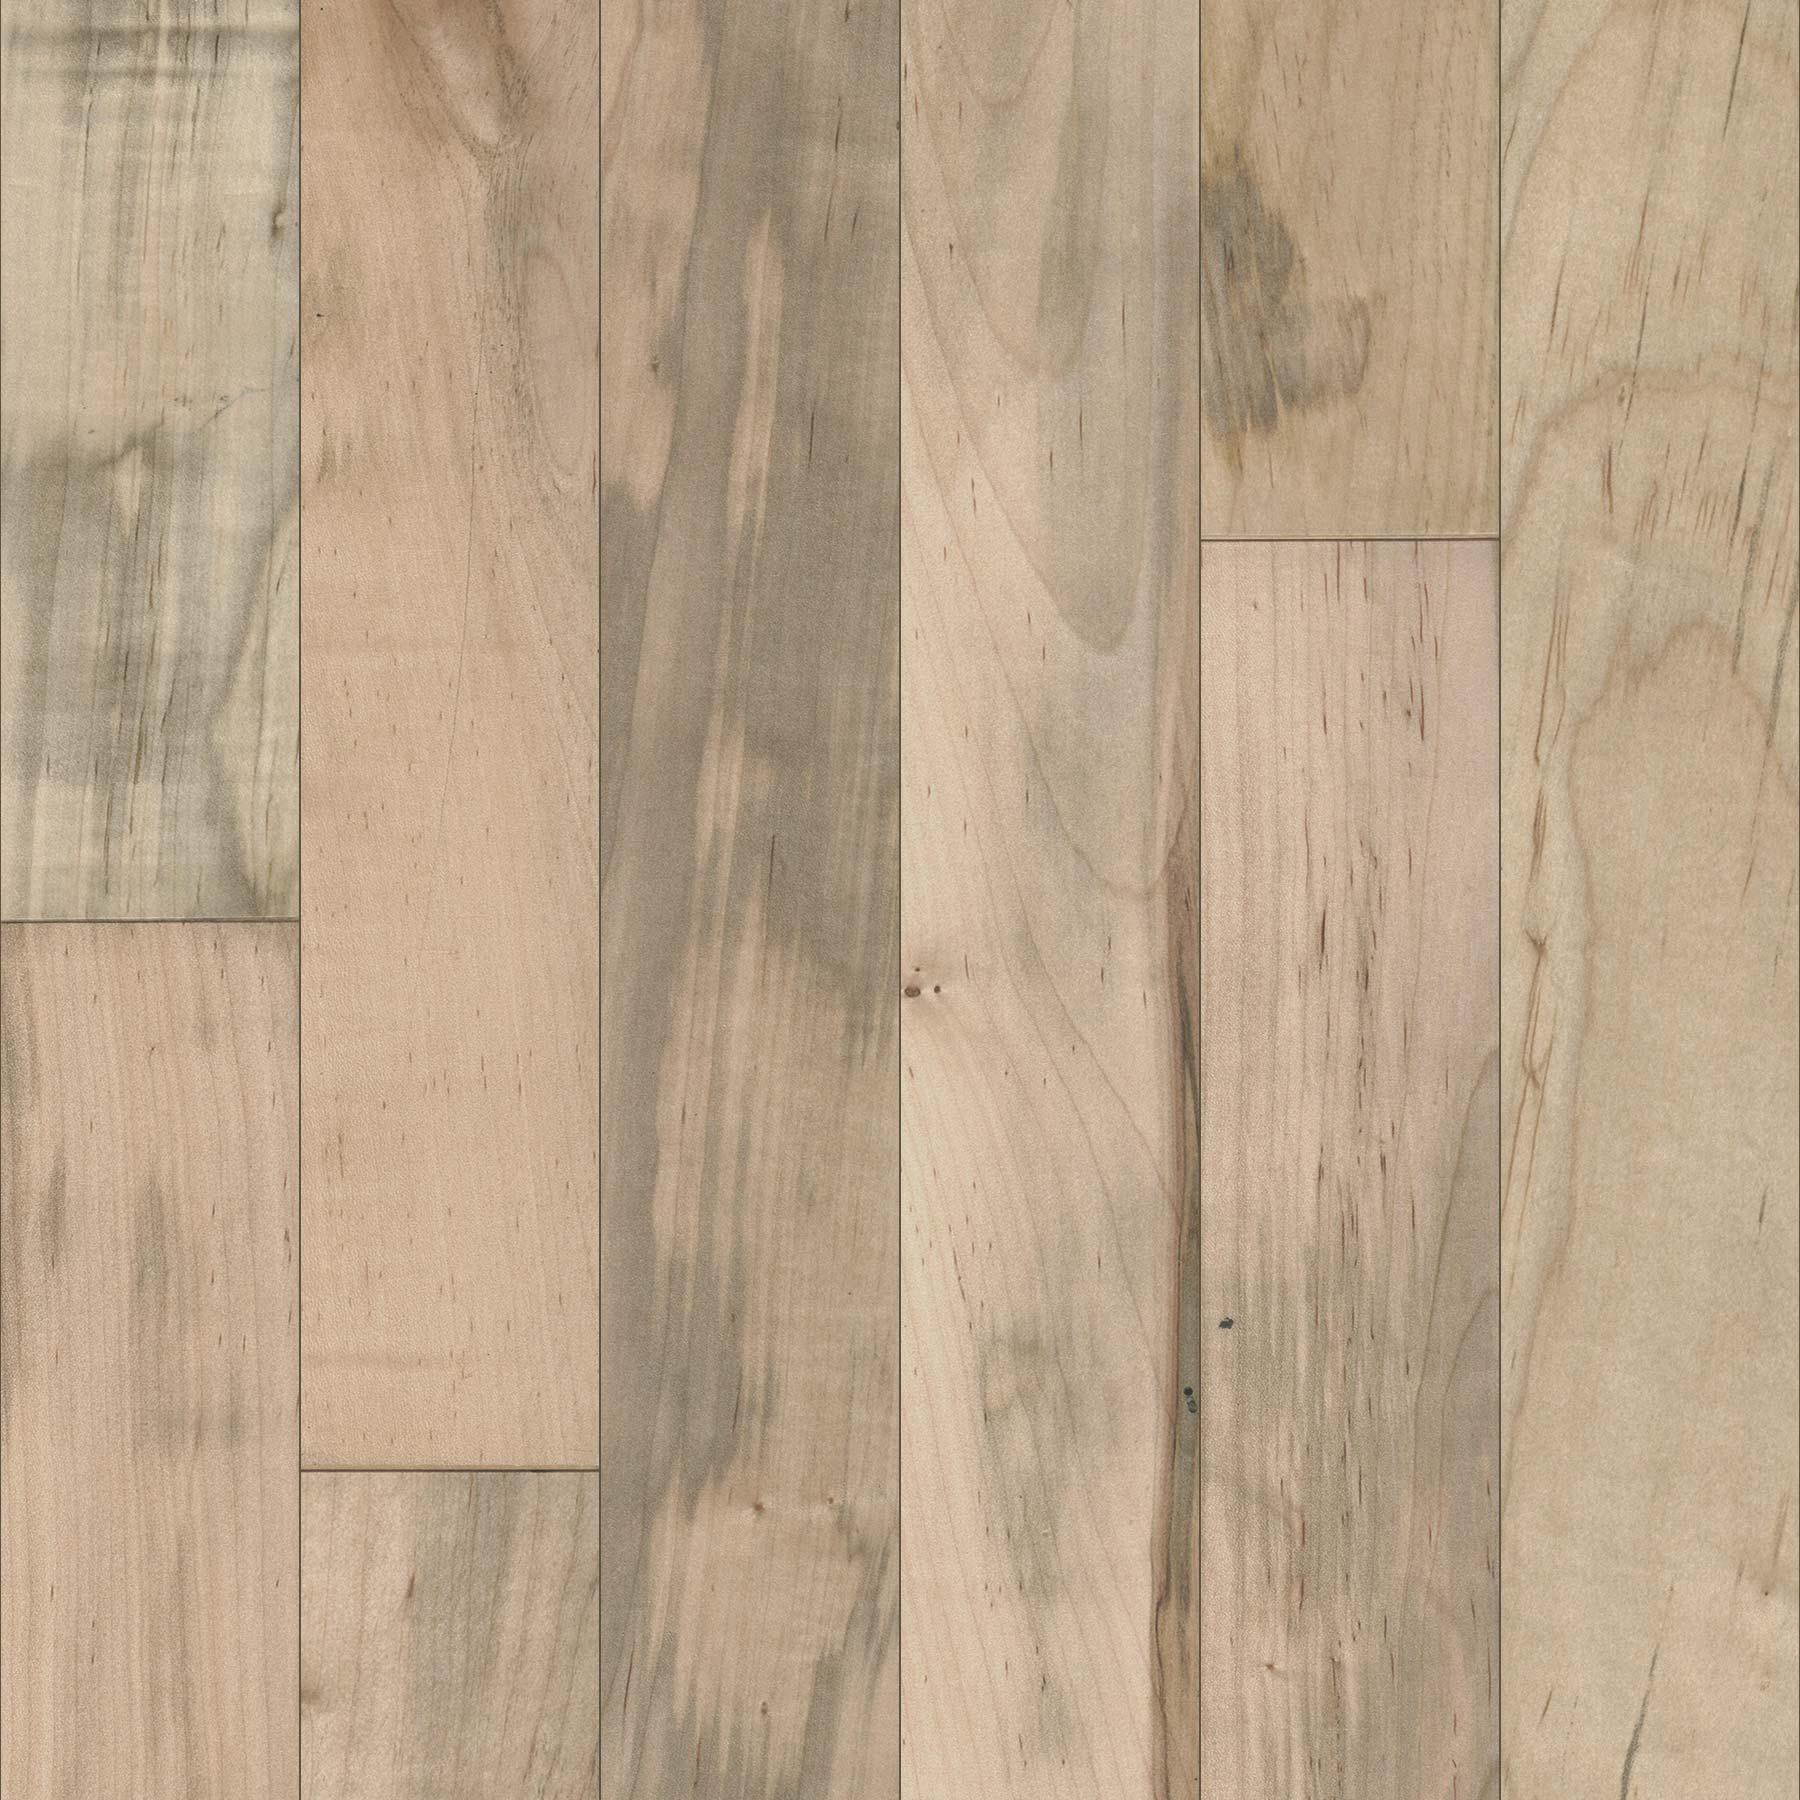 1 2 inch solid hardwood flooring of kingsmill natural maple 3 wide 3 4 solid hardwood flooring pertaining to natural maple m unat3 3 x 55 approved